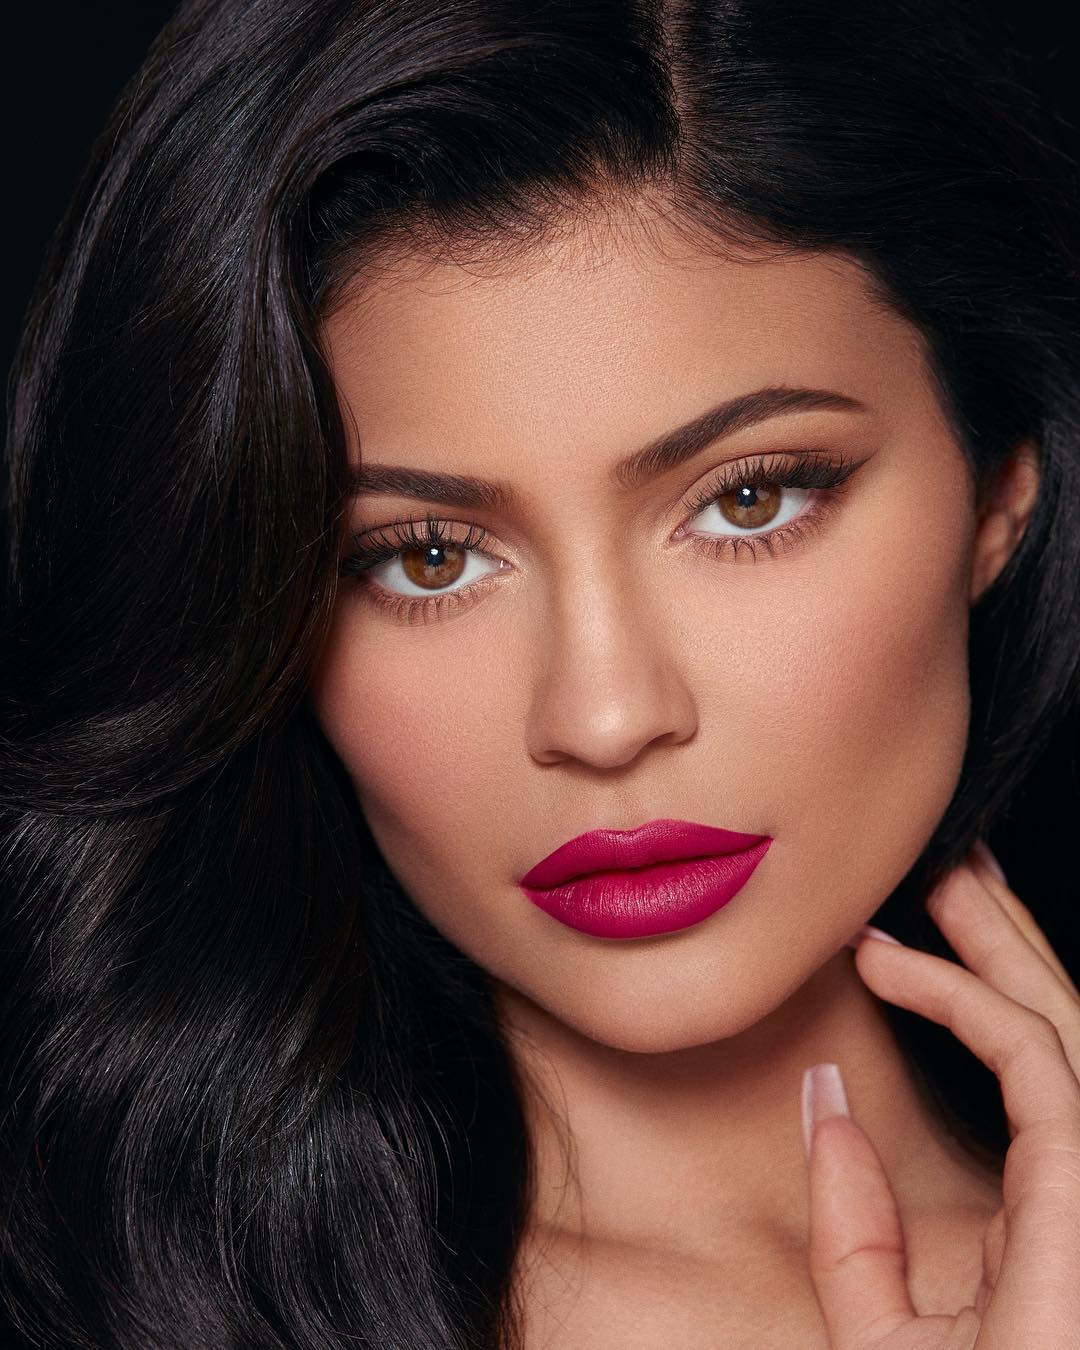 kylie jenner 1 - Jordyn Woods 'visibly uncomfortable' upon meeting Kendall Jenner